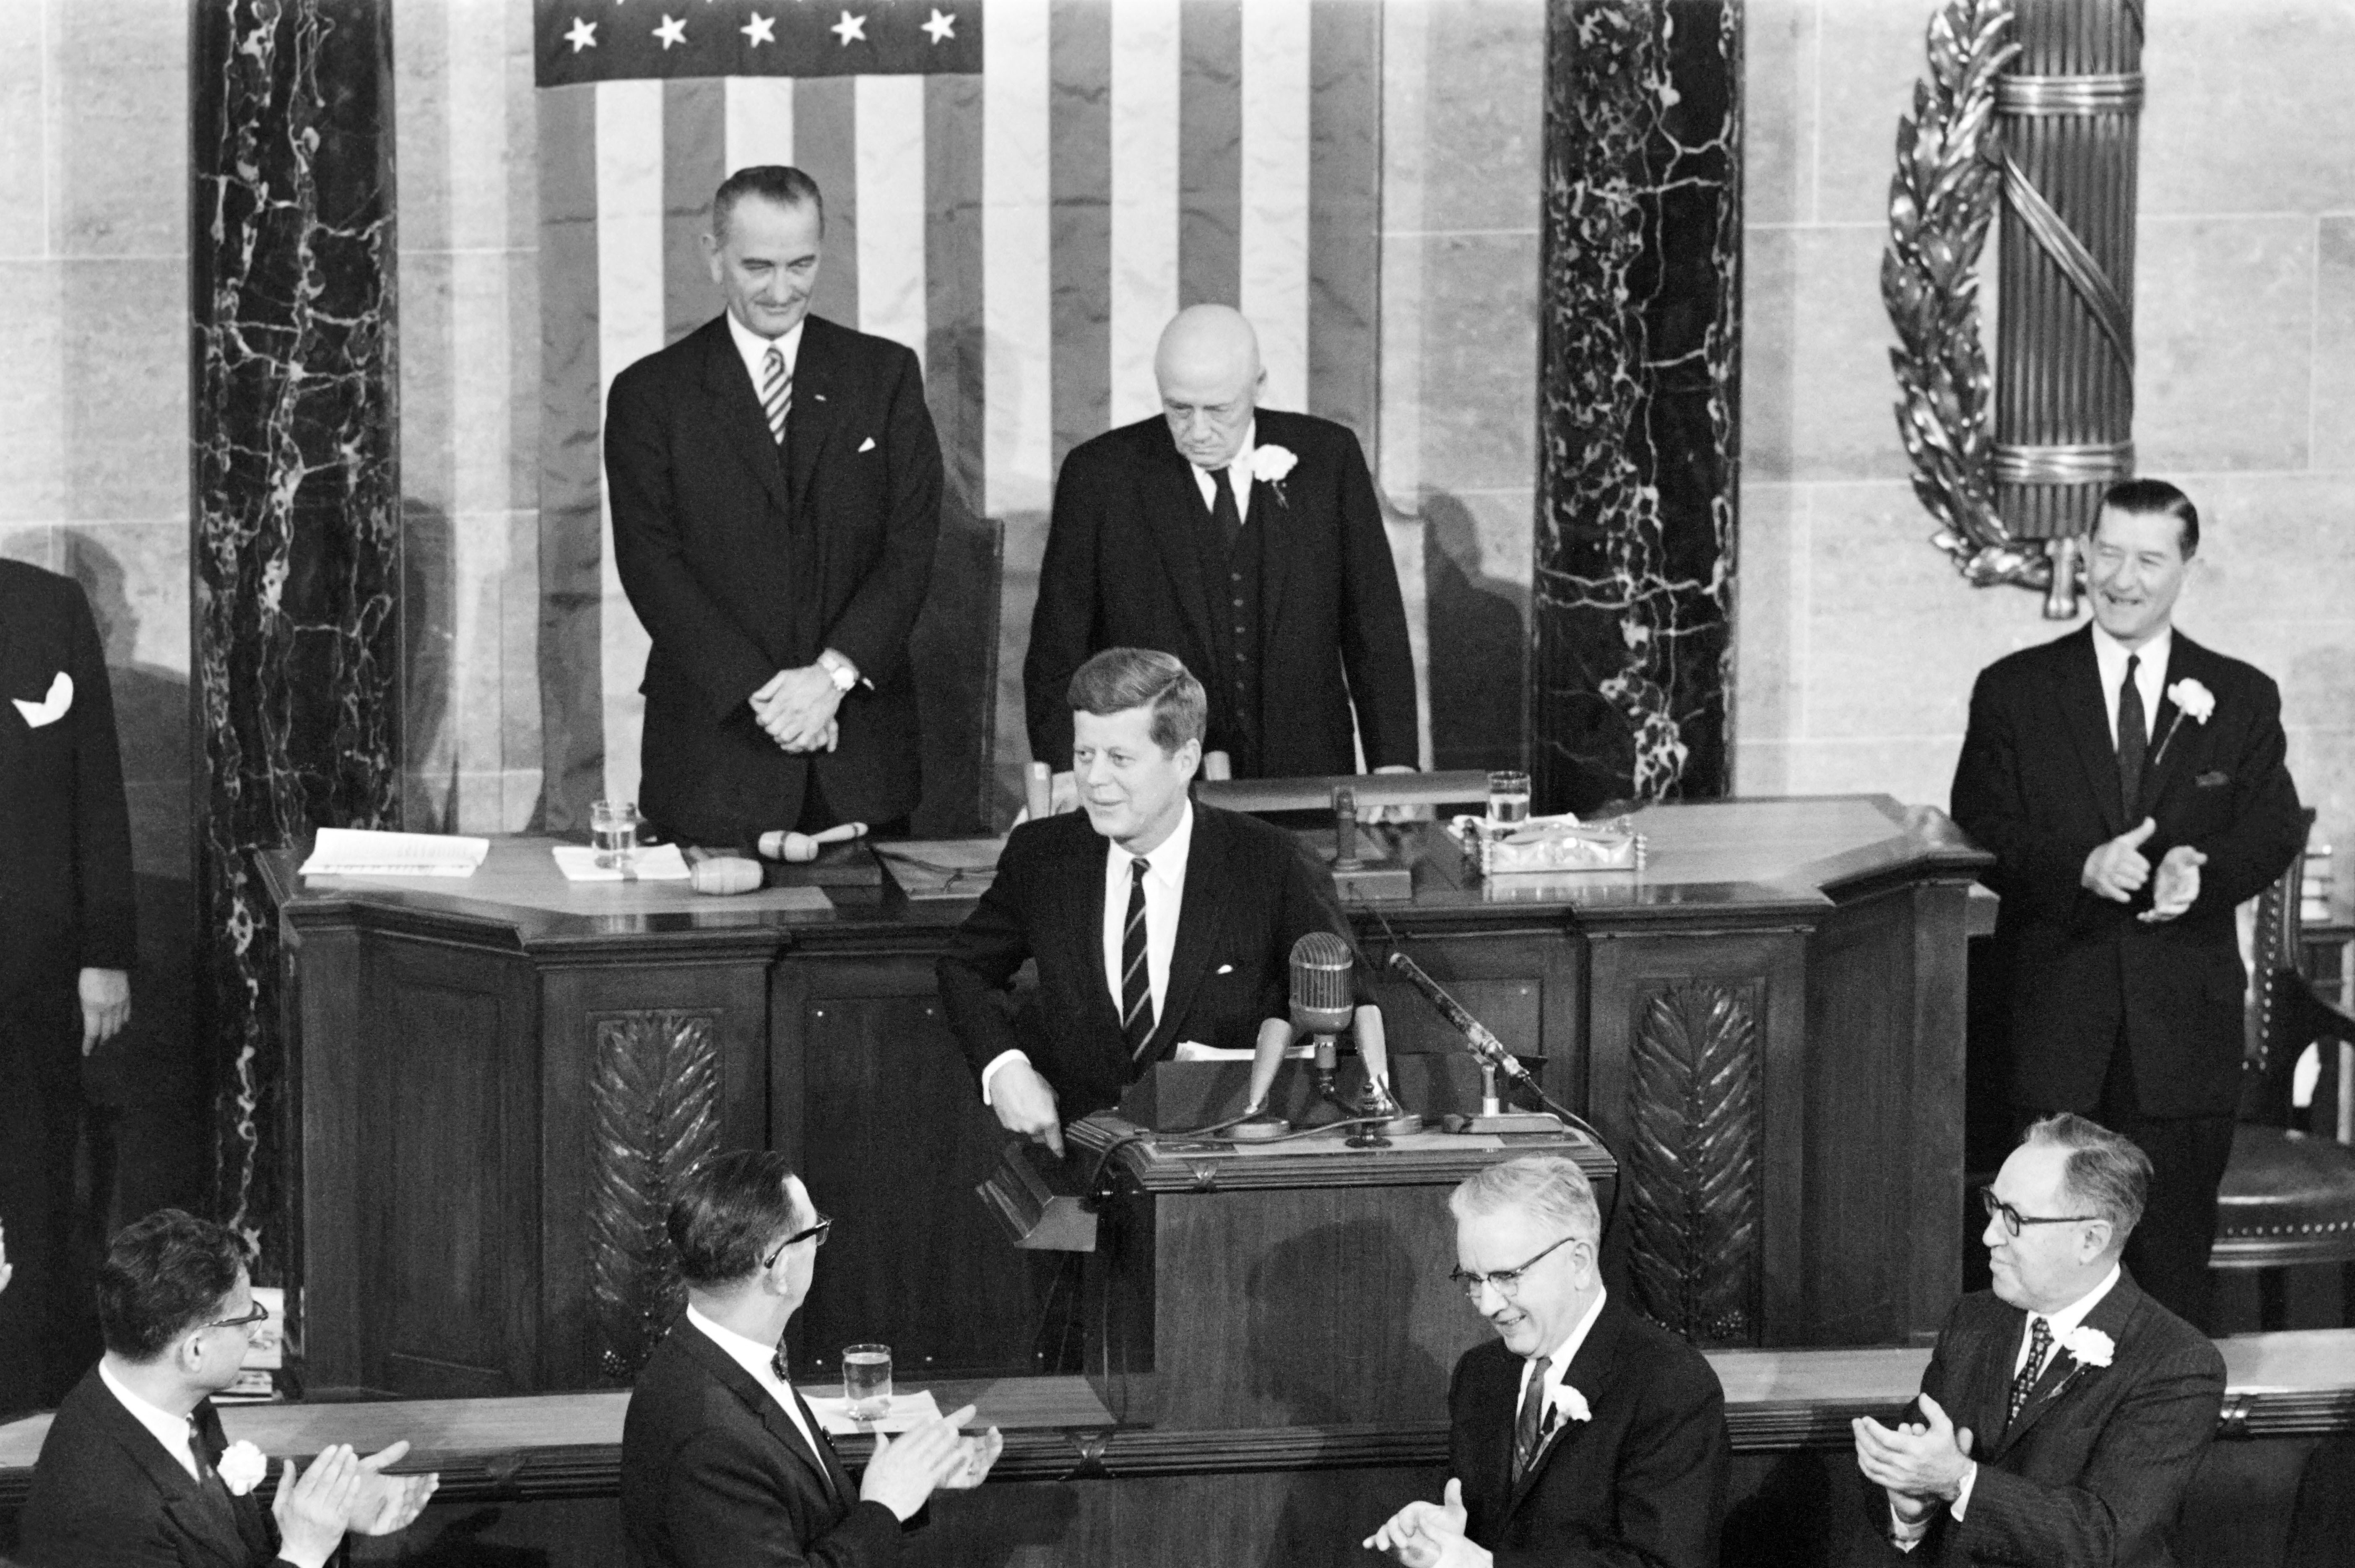 Past Presidents Made History In First Address To Congress